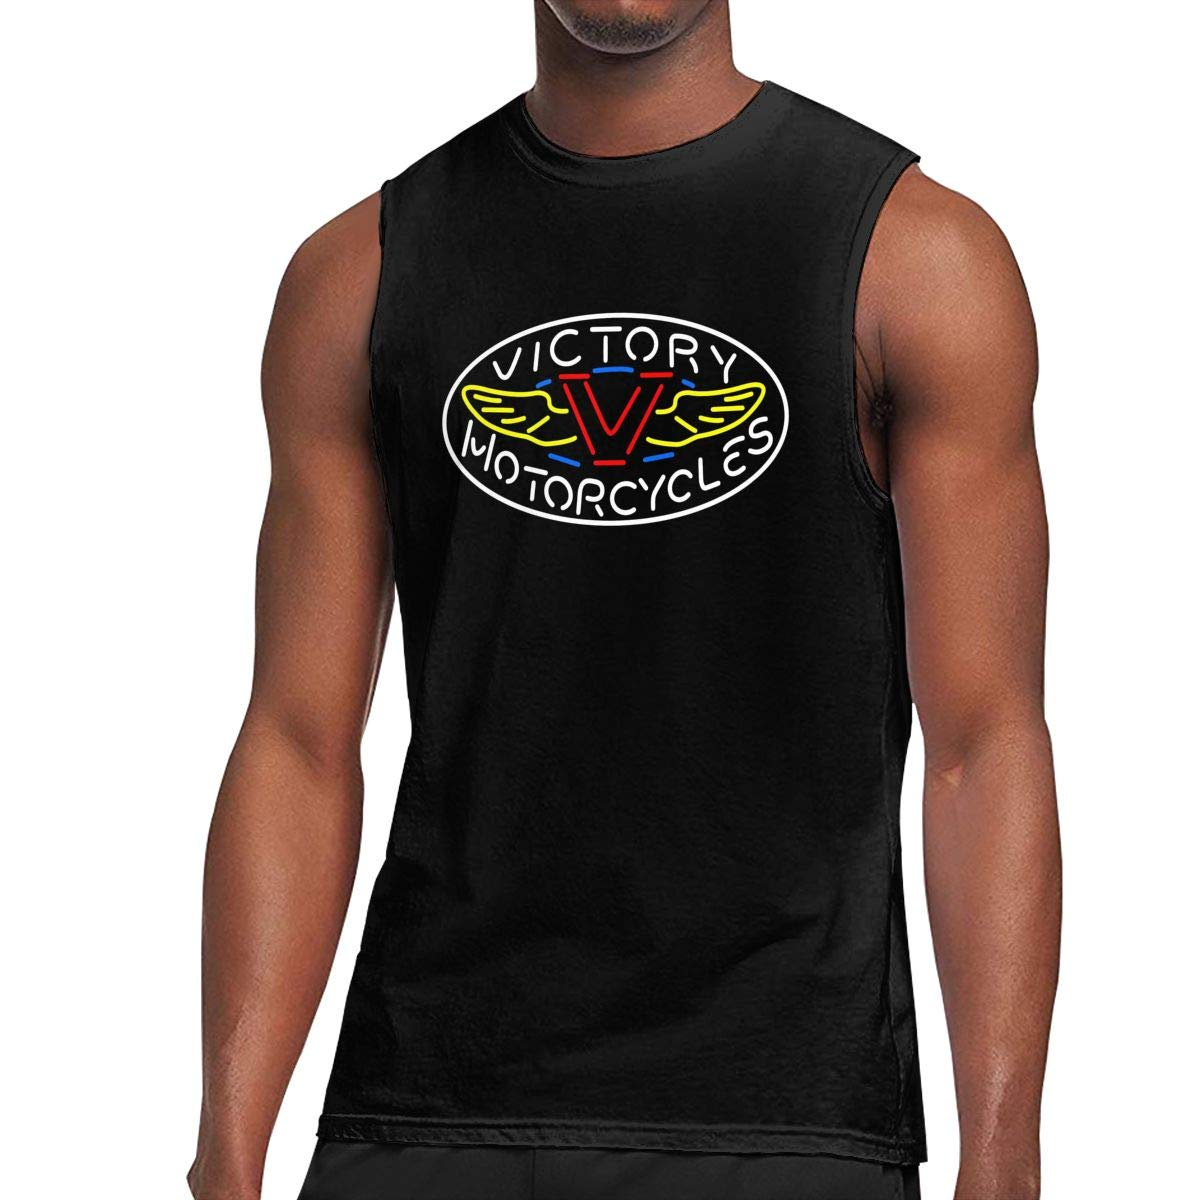 TIANXIN Personalized Handcraft Victory Motorcycle Logo Breathable 100% Cotton Sleeveless T Shirt for Man O-Neck XL Black